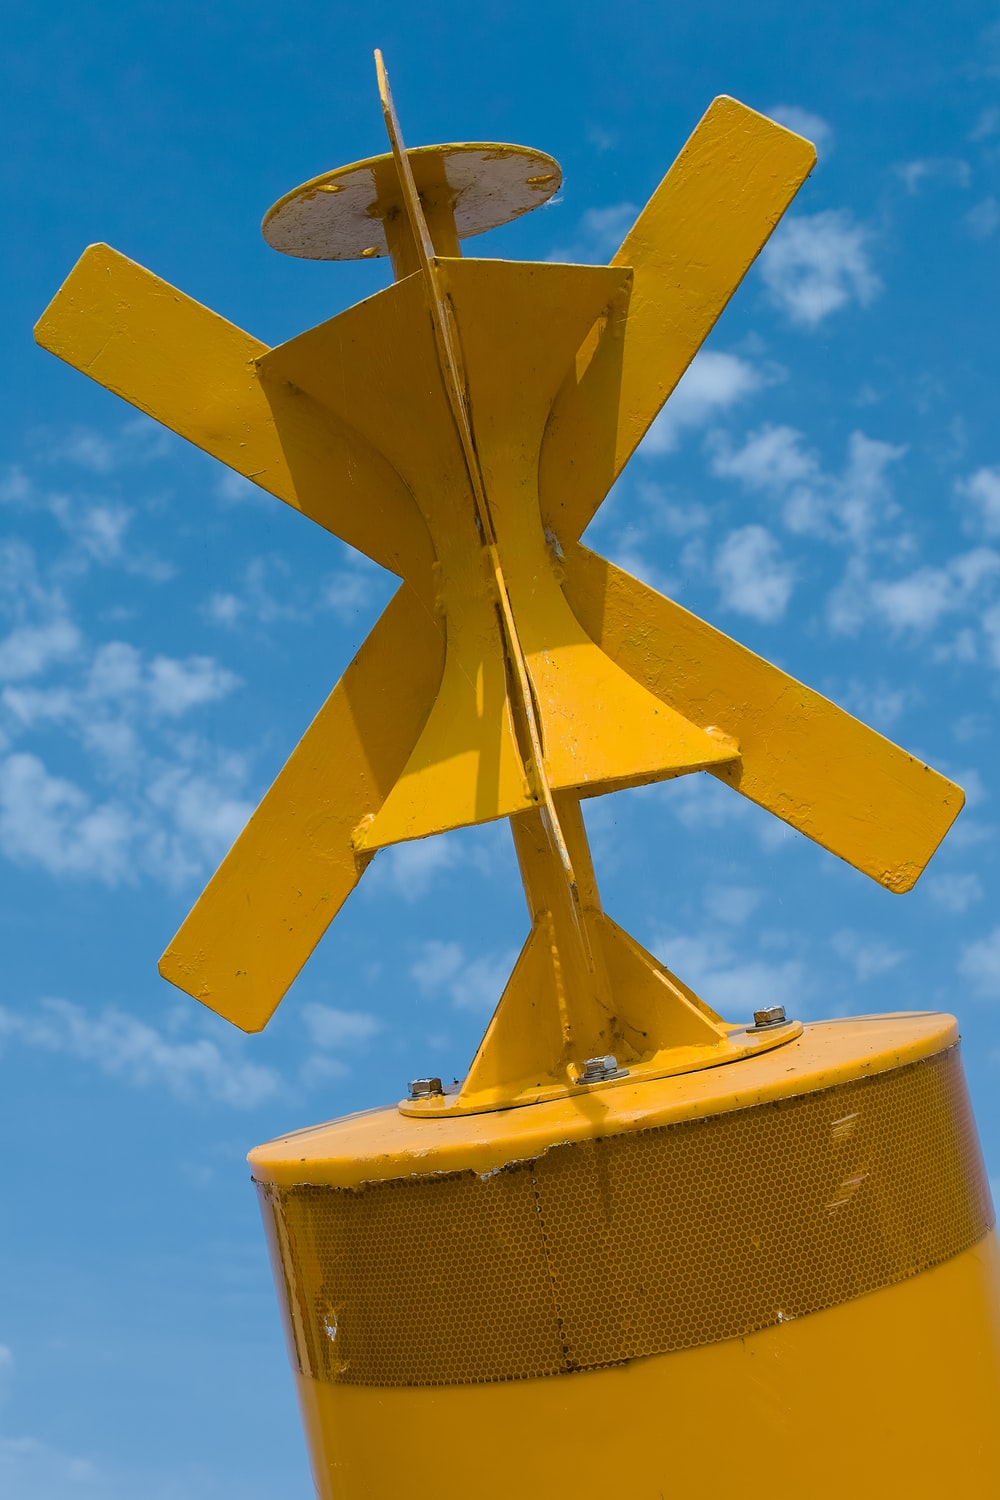 yellow and brown windmill under blue sky during daytime